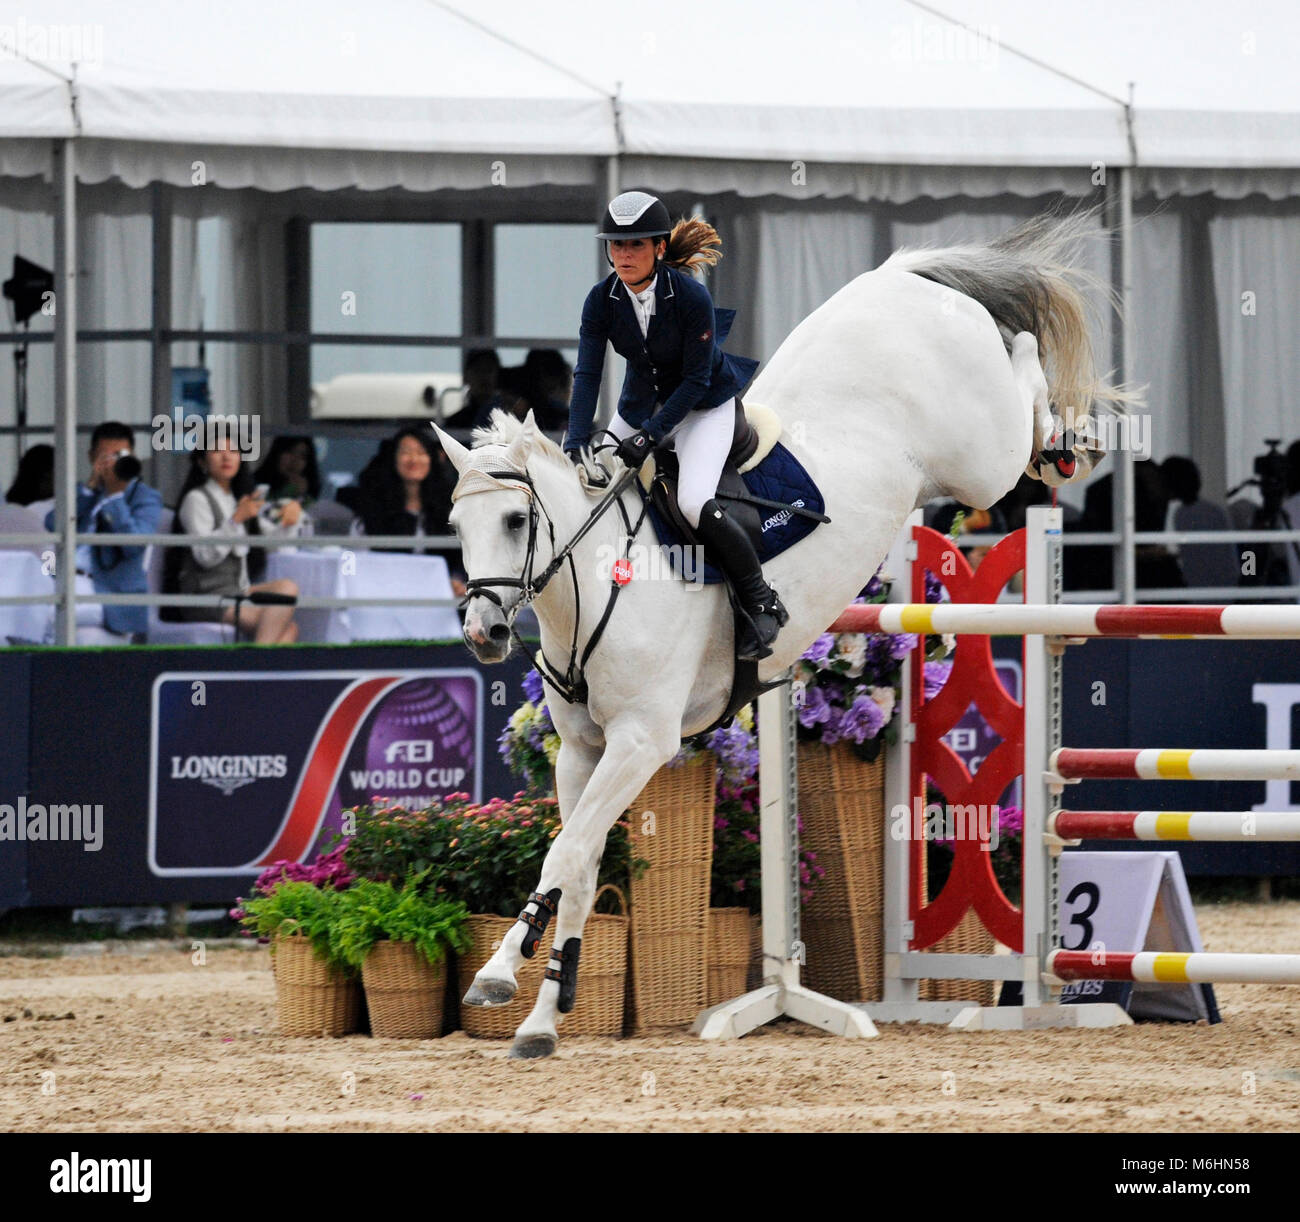 FEI jumping event in Chaoyang park, Beijing, China, in October 2016 Stock Photo